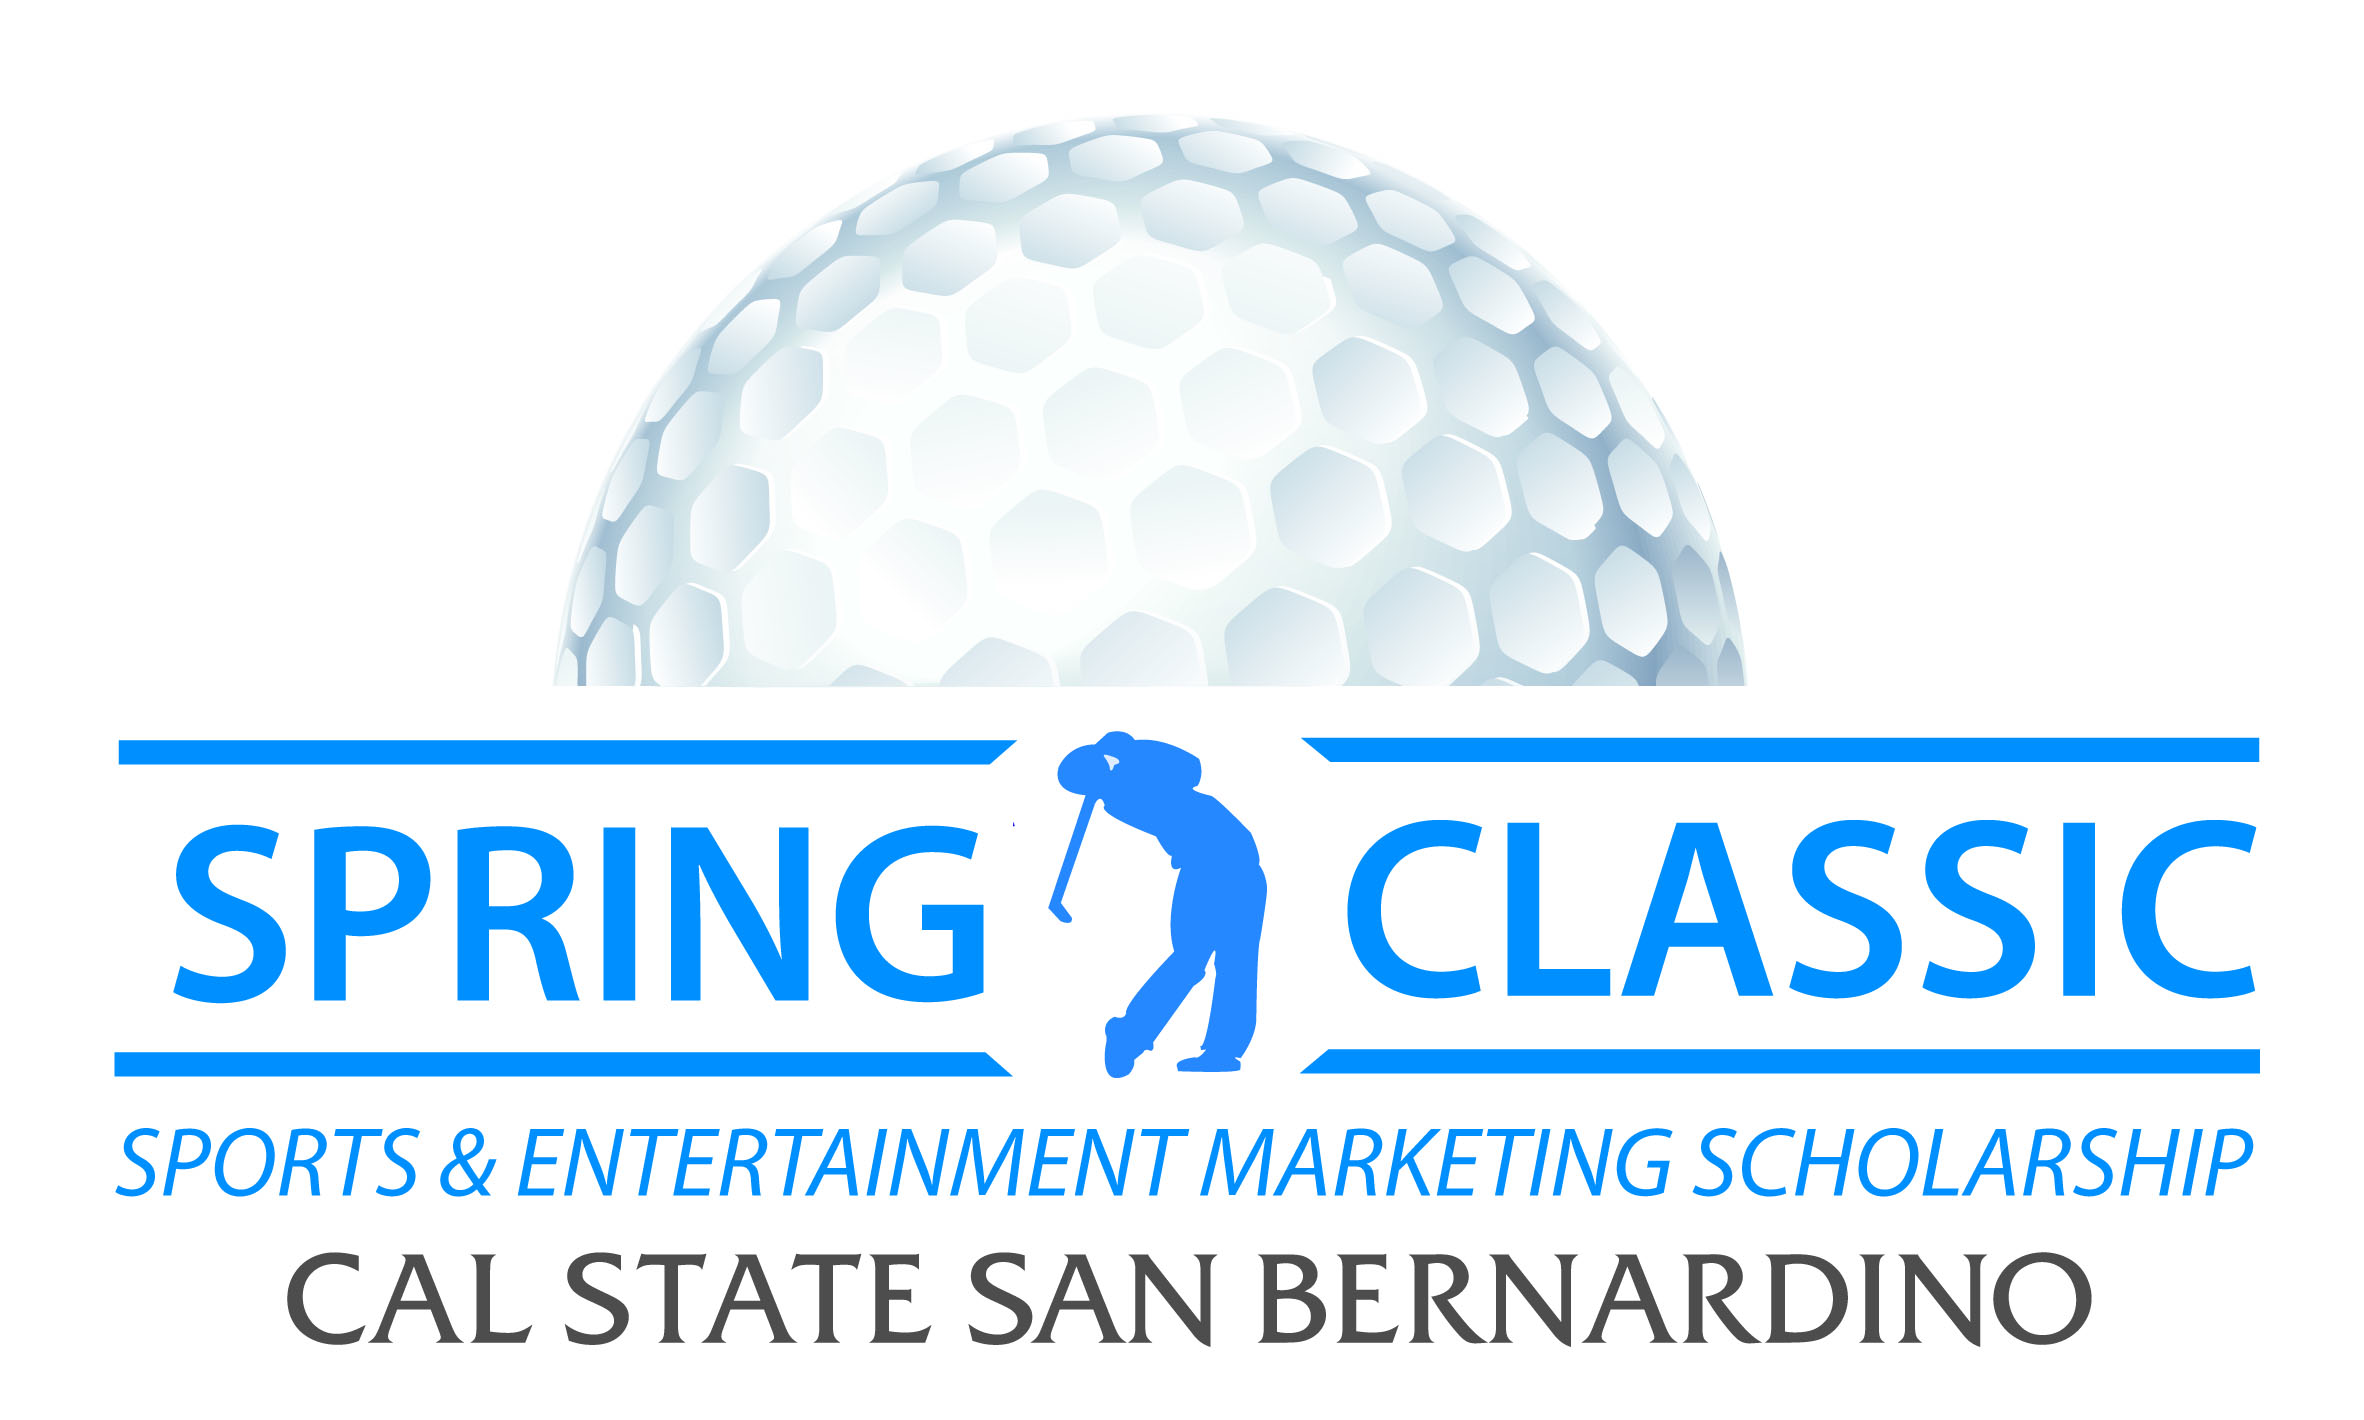 Spring Classic Sports & Entertainment Marketing Scholarship Cal State San Bernardino